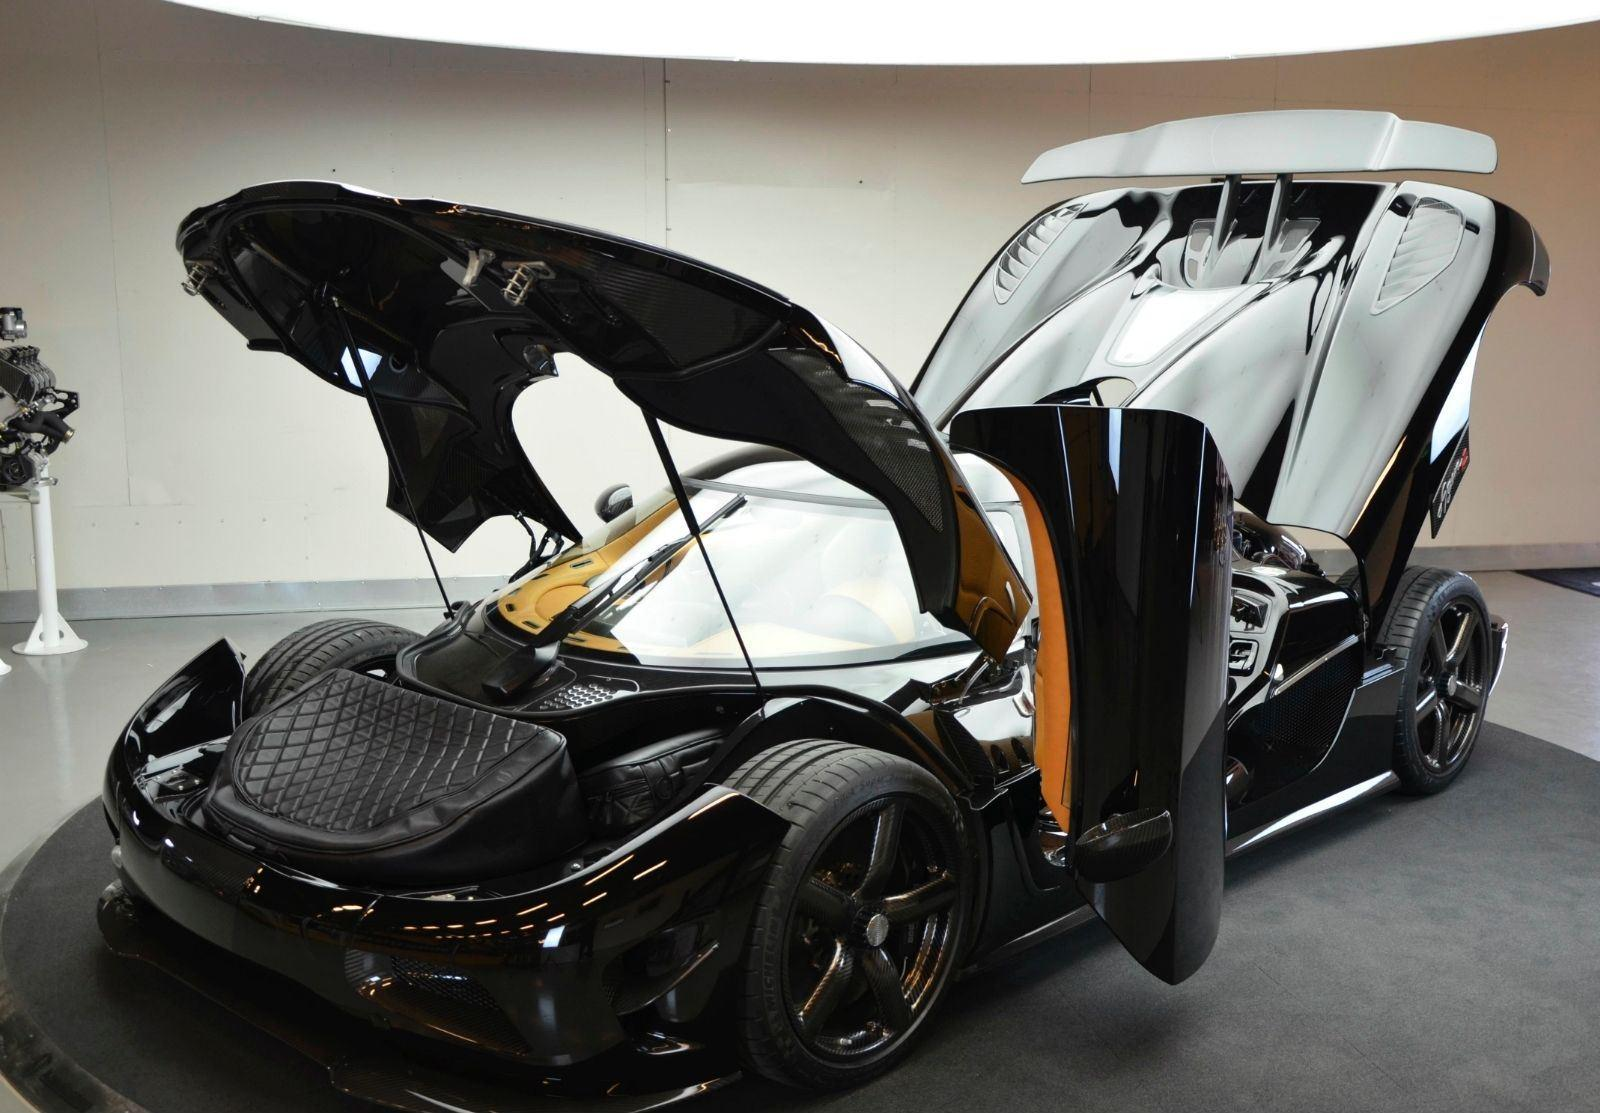 foto koenigsegg 0 divers agera r occasion koenigsegg agera r tweedehands 001. Black Bedroom Furniture Sets. Home Design Ideas